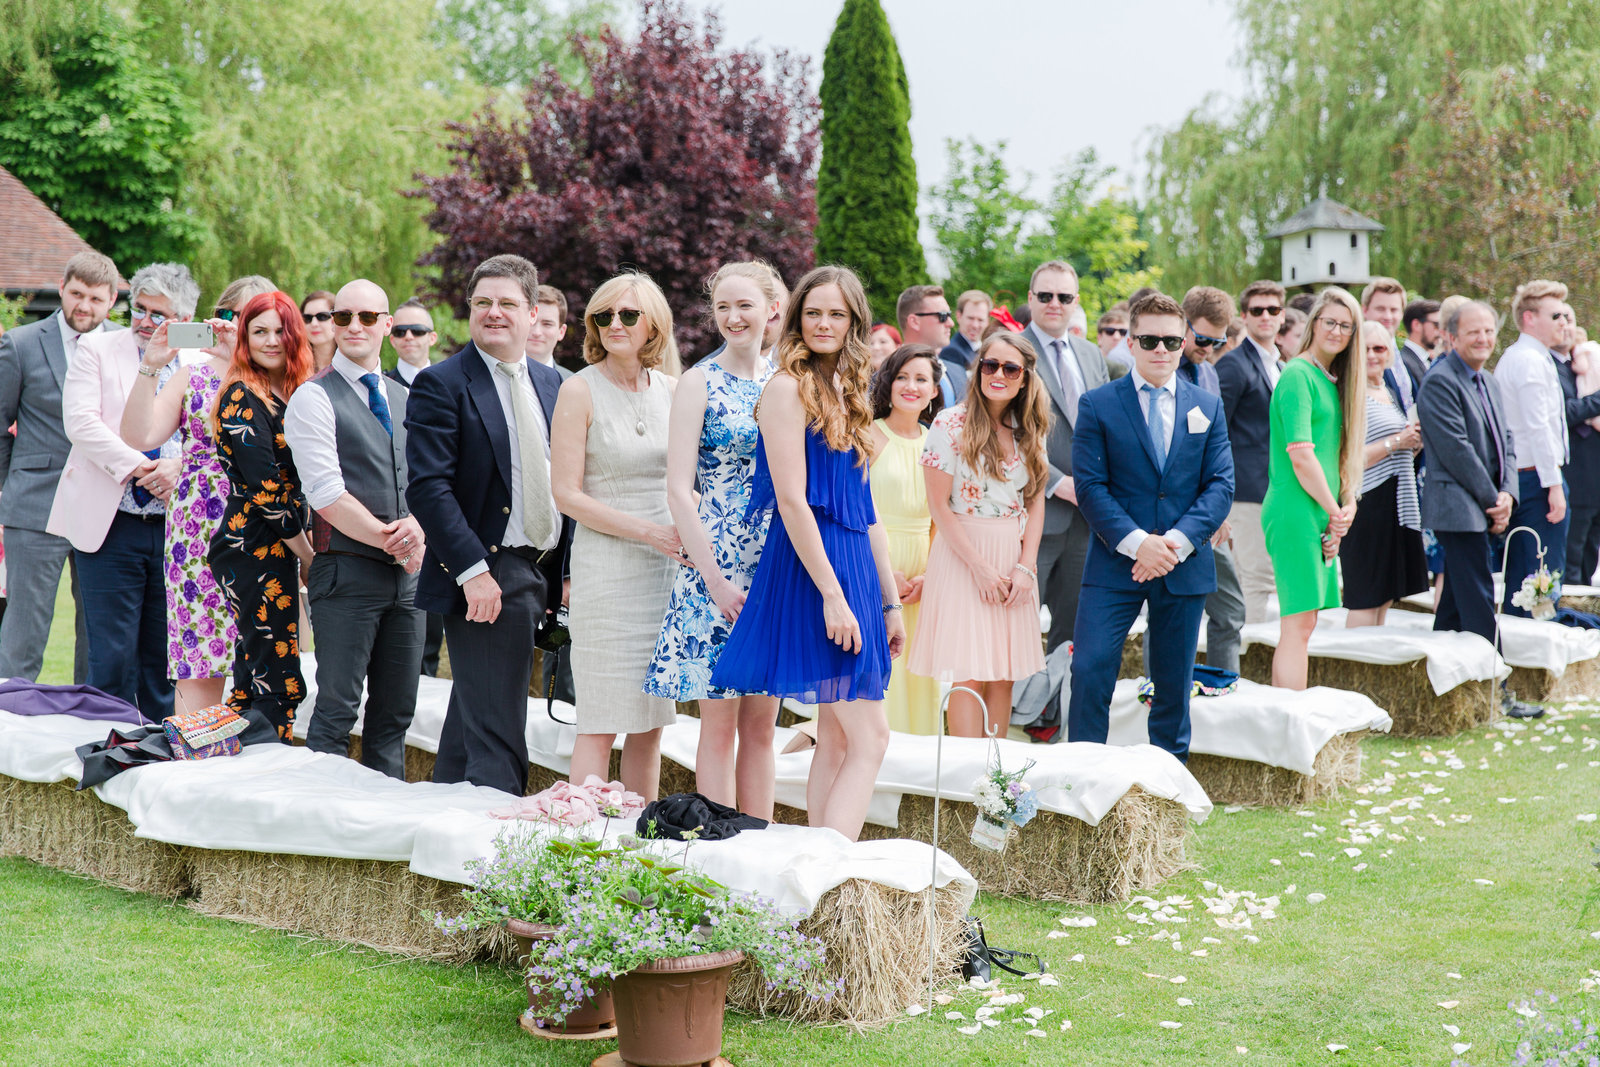 adorlee-094-wedding-photographer-chichester-west-sussex